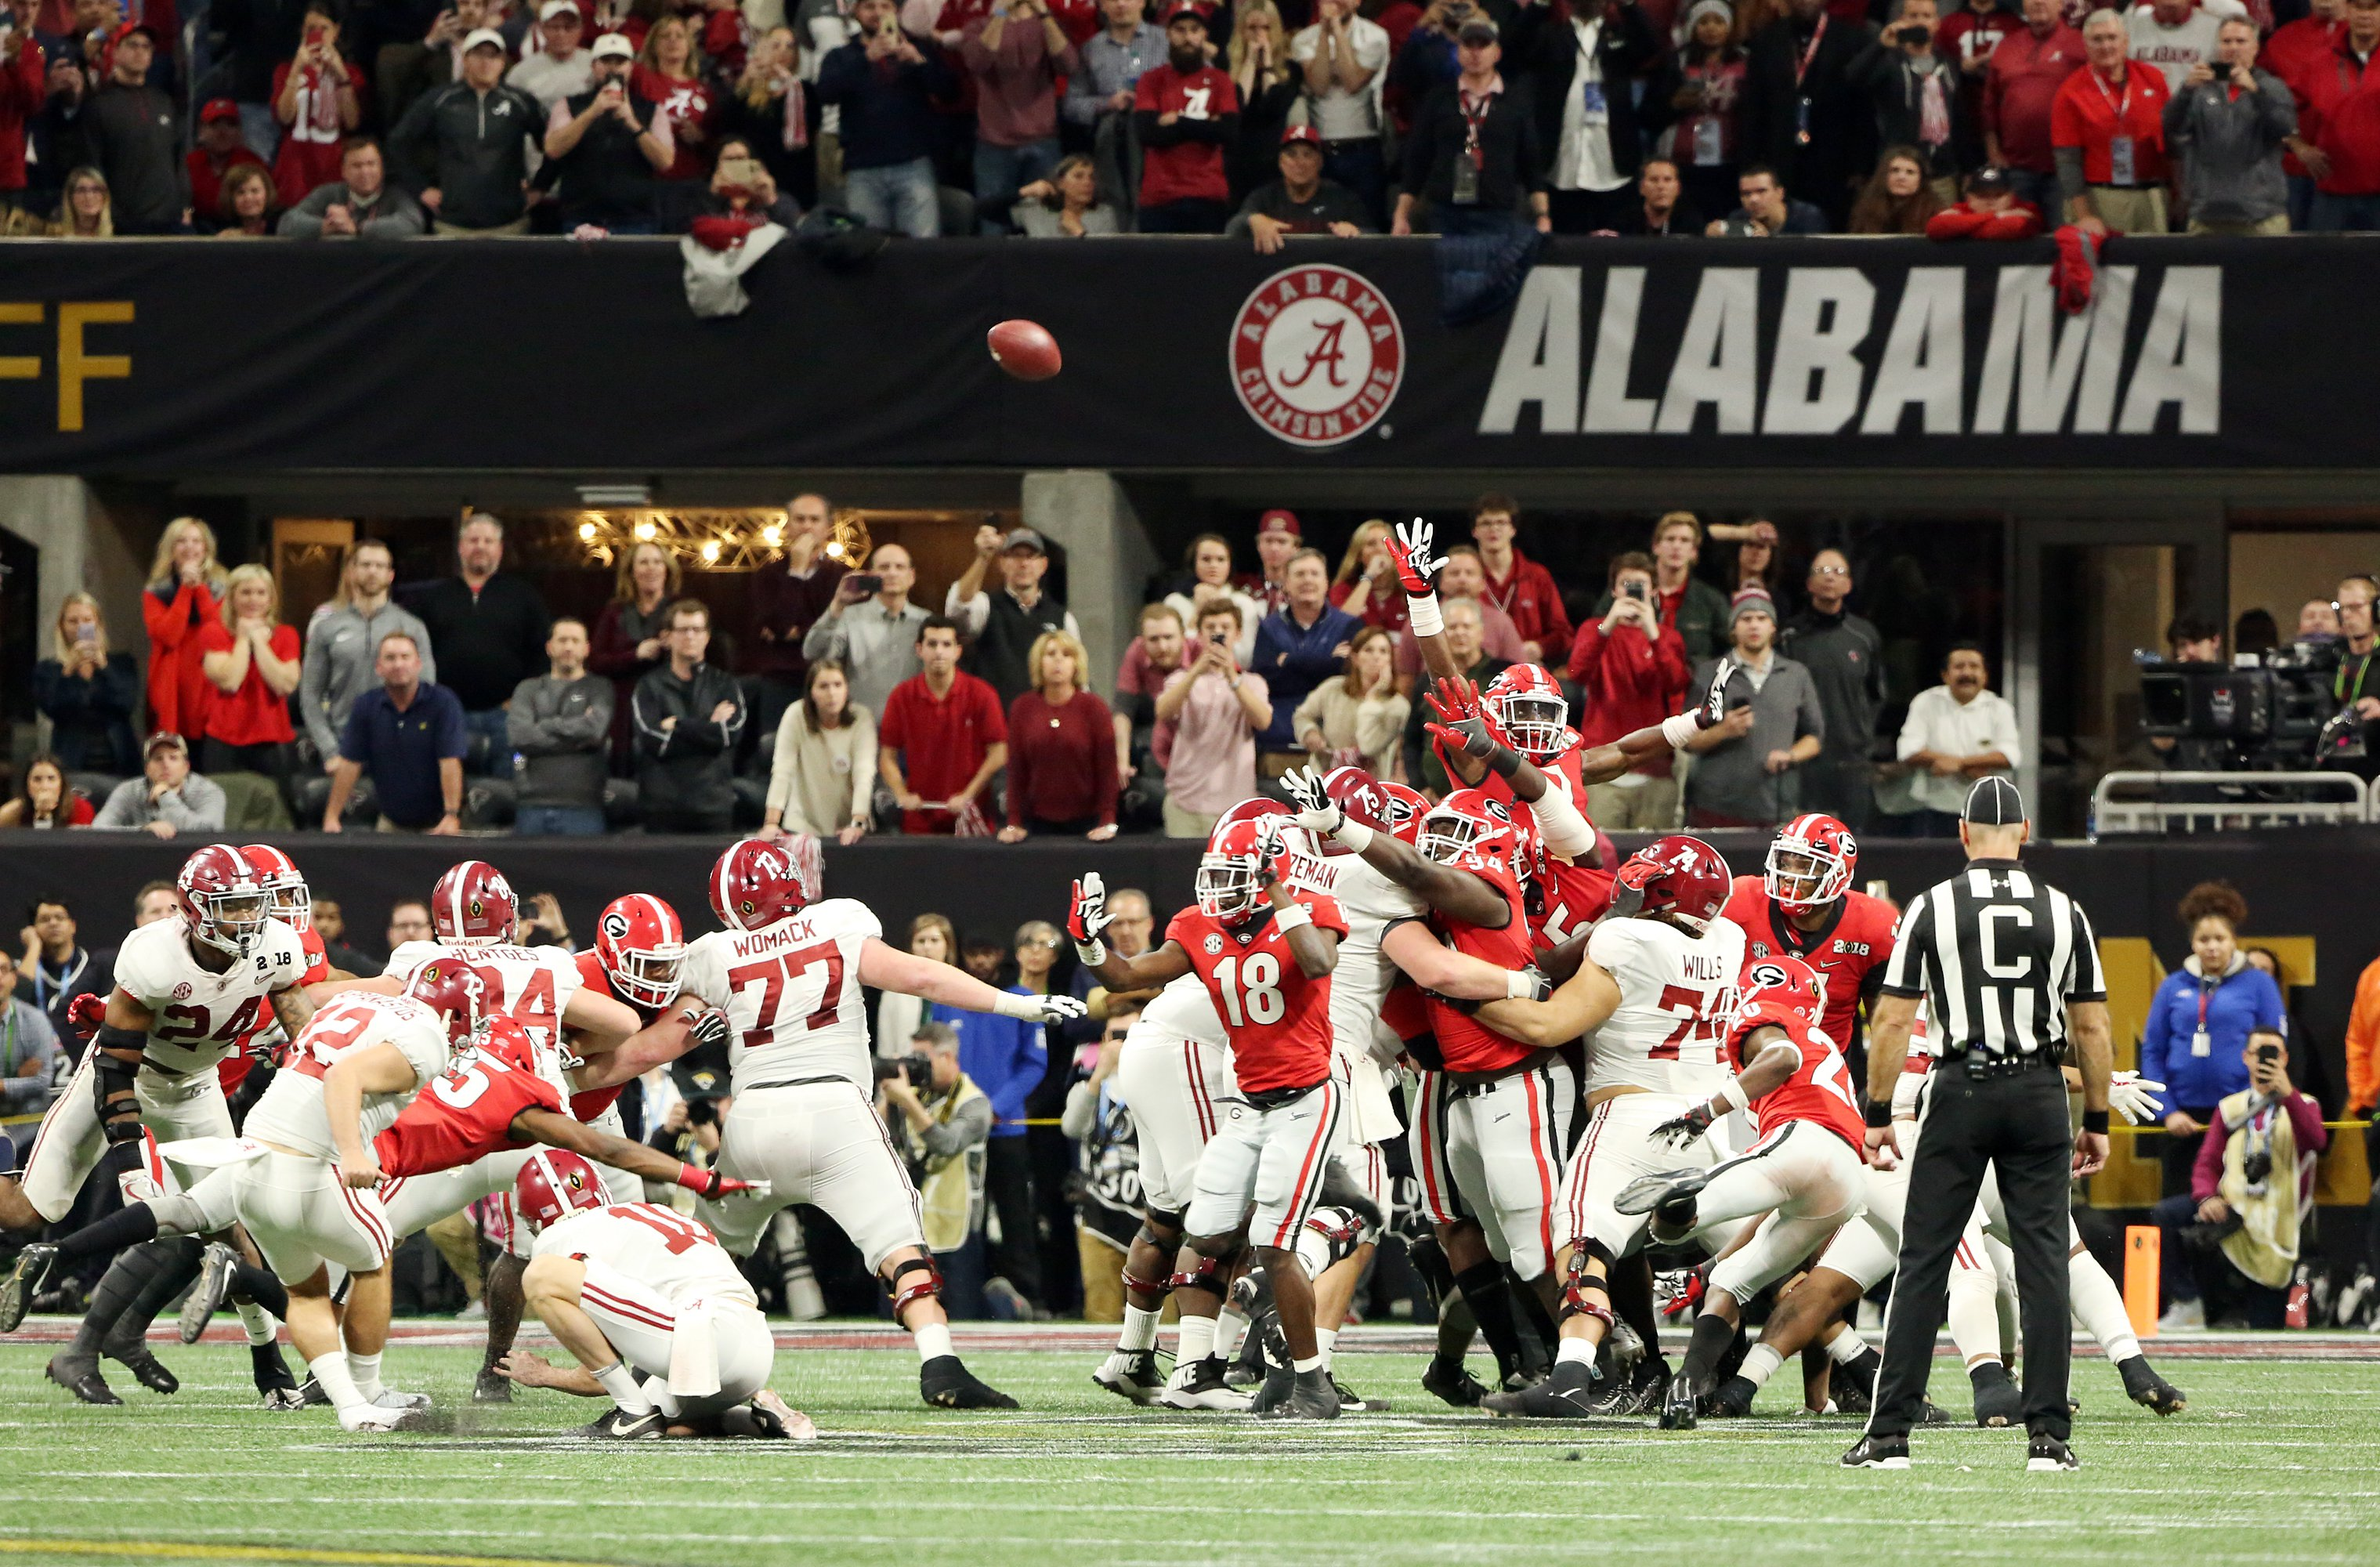 Alabama misses a potential game-winning field goal